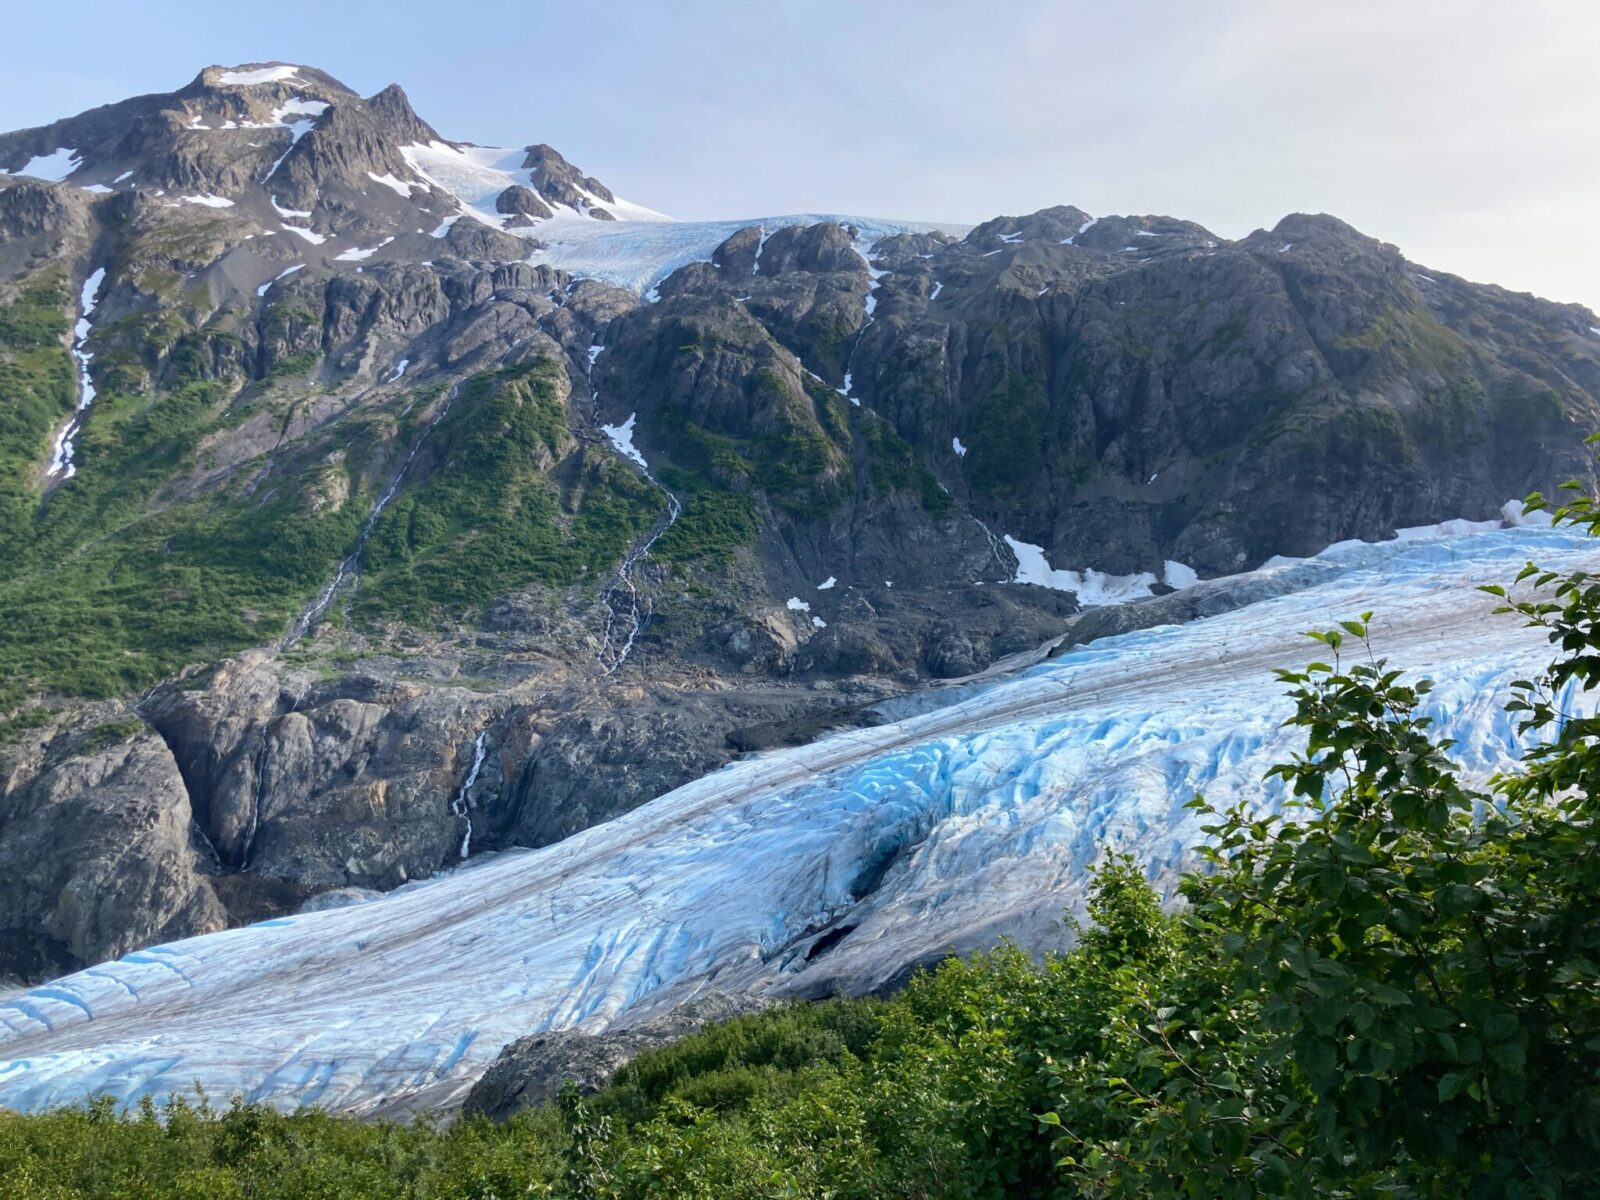 A side view of Exit Glacier from a hiking trail, one of the best things to do in Seward. The glacier has dark brown streaks over white and blue ice and is going between mountains with lingering snow. At the top of the mountain there is another glacier in view. The foreground has green brush